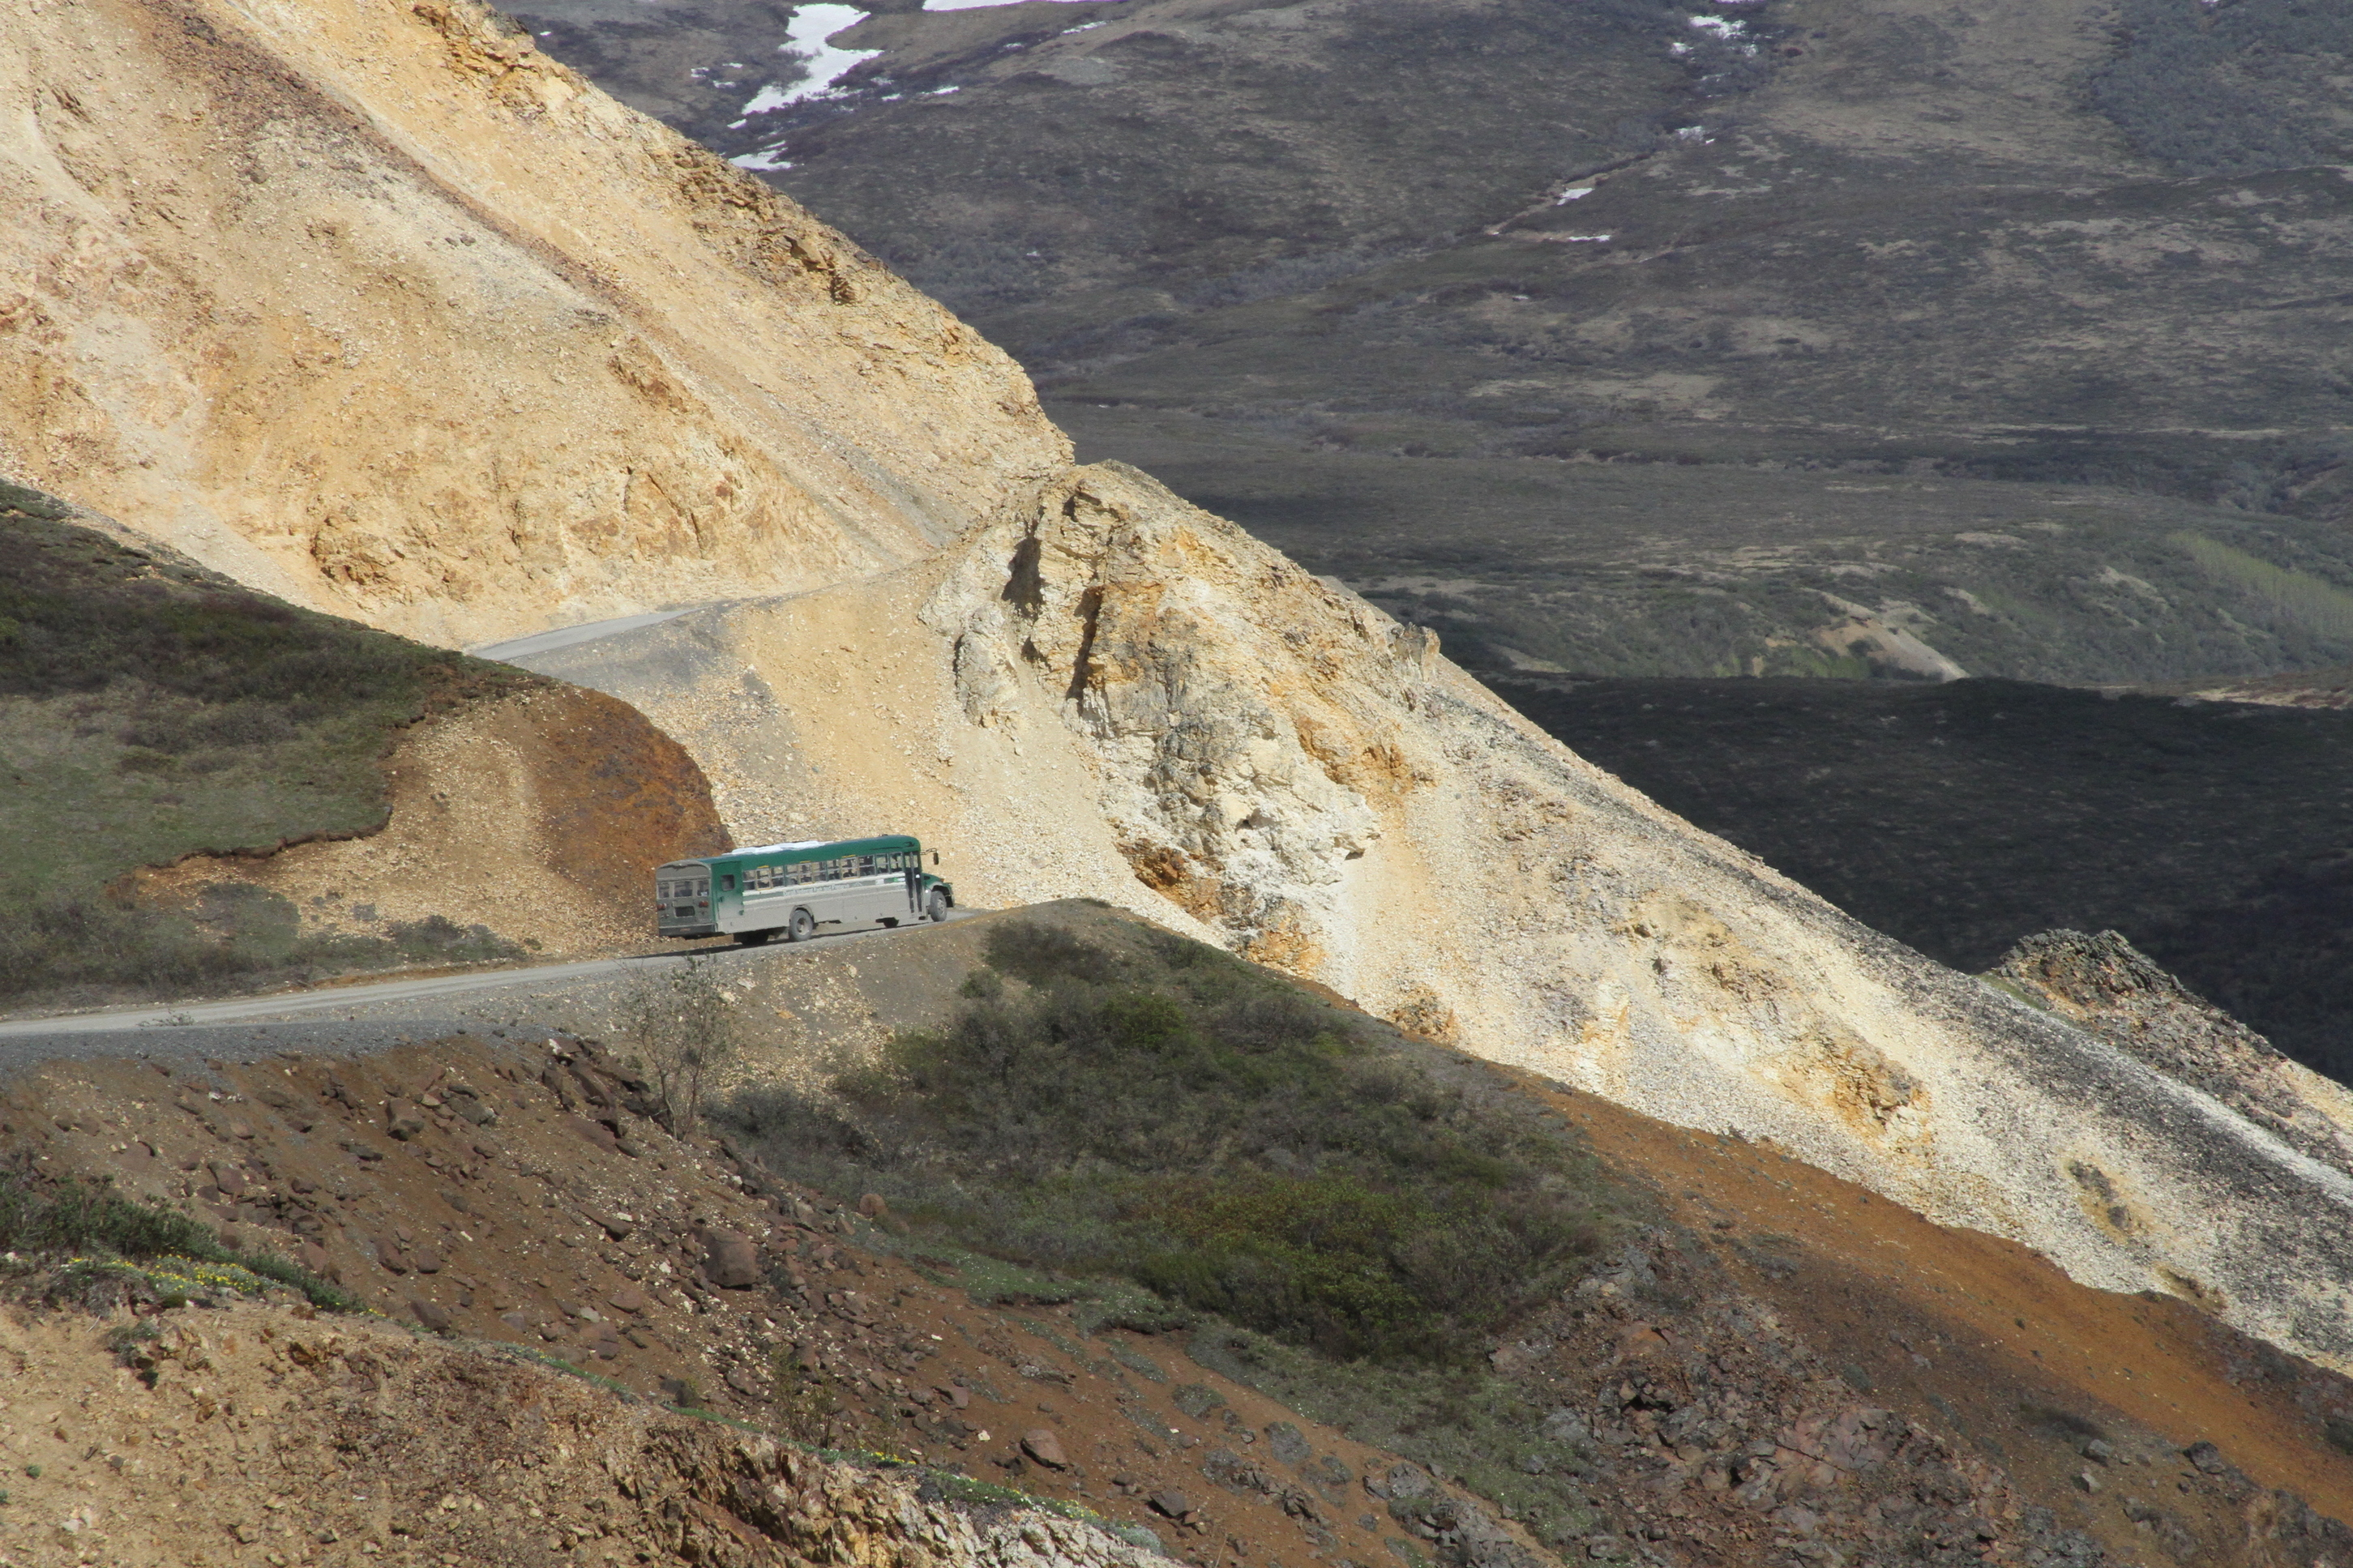 The Latest: All tourists return to Denali entrance safely